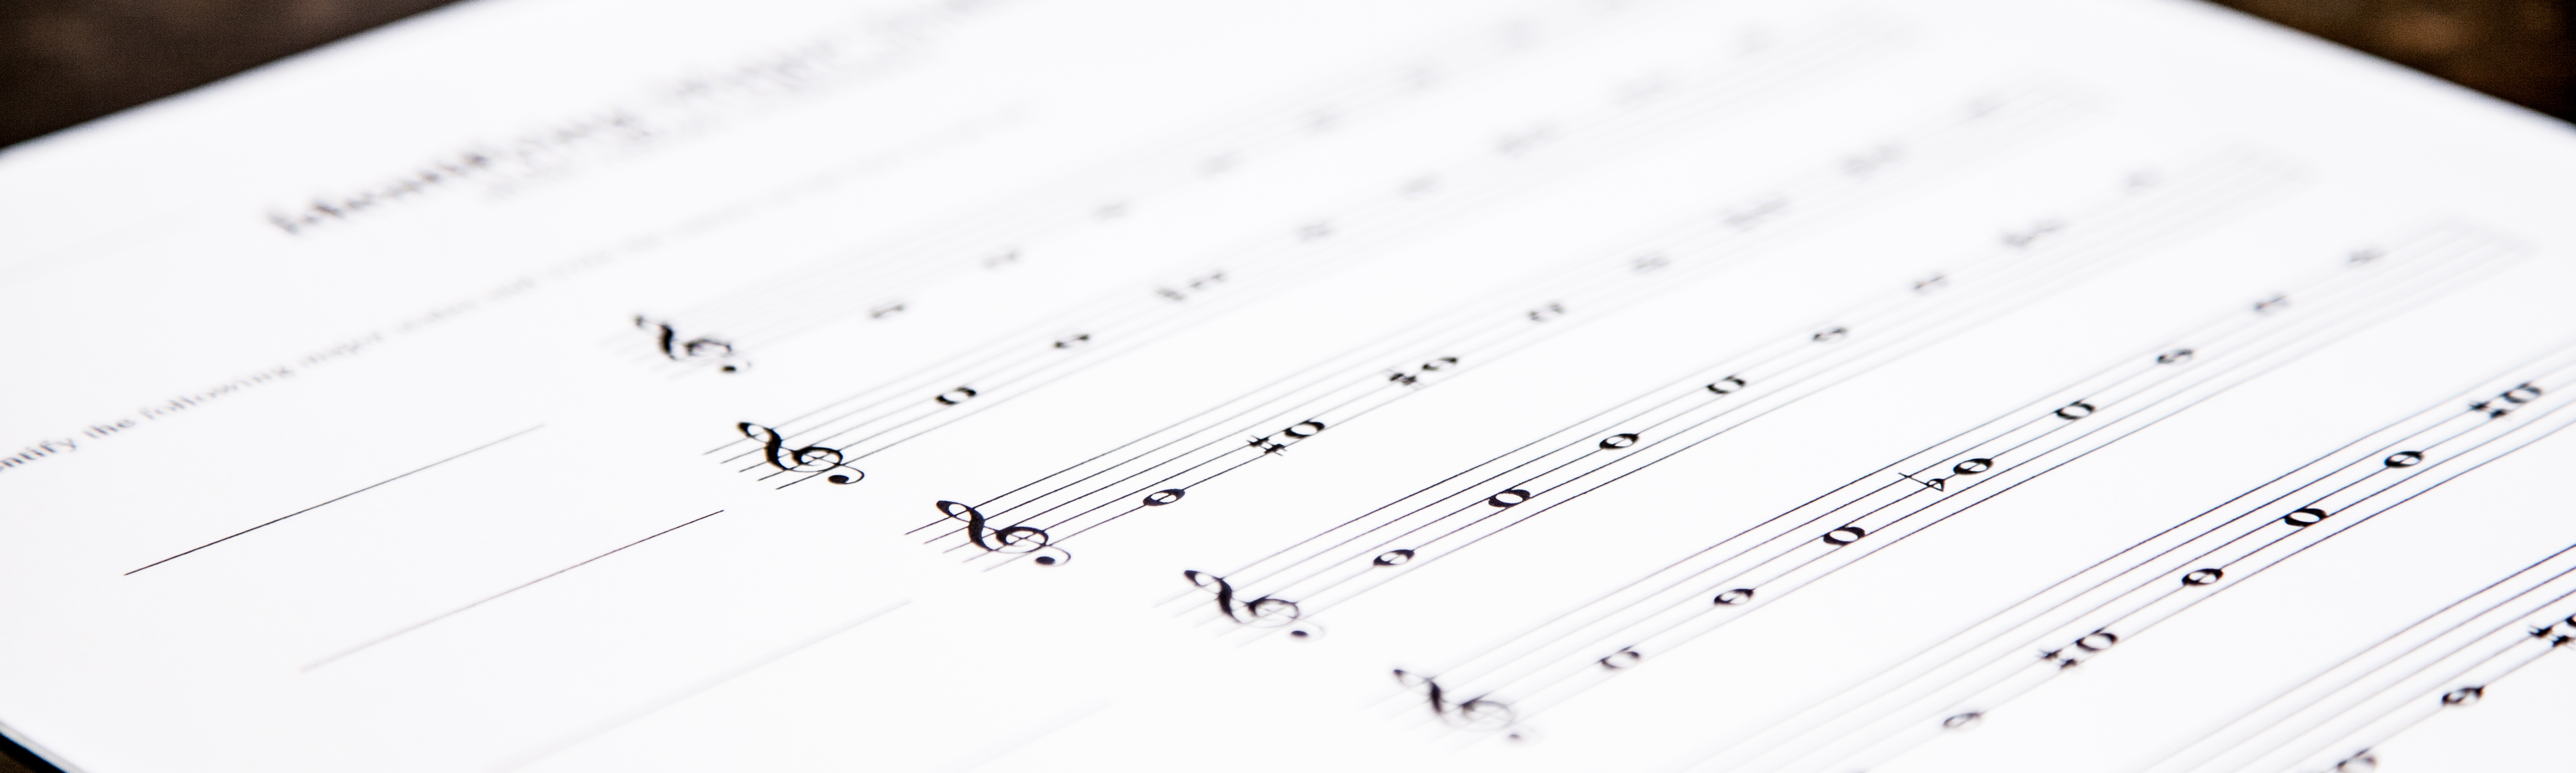 Worksheet Piano Music Notes For Beginners And Worksheets